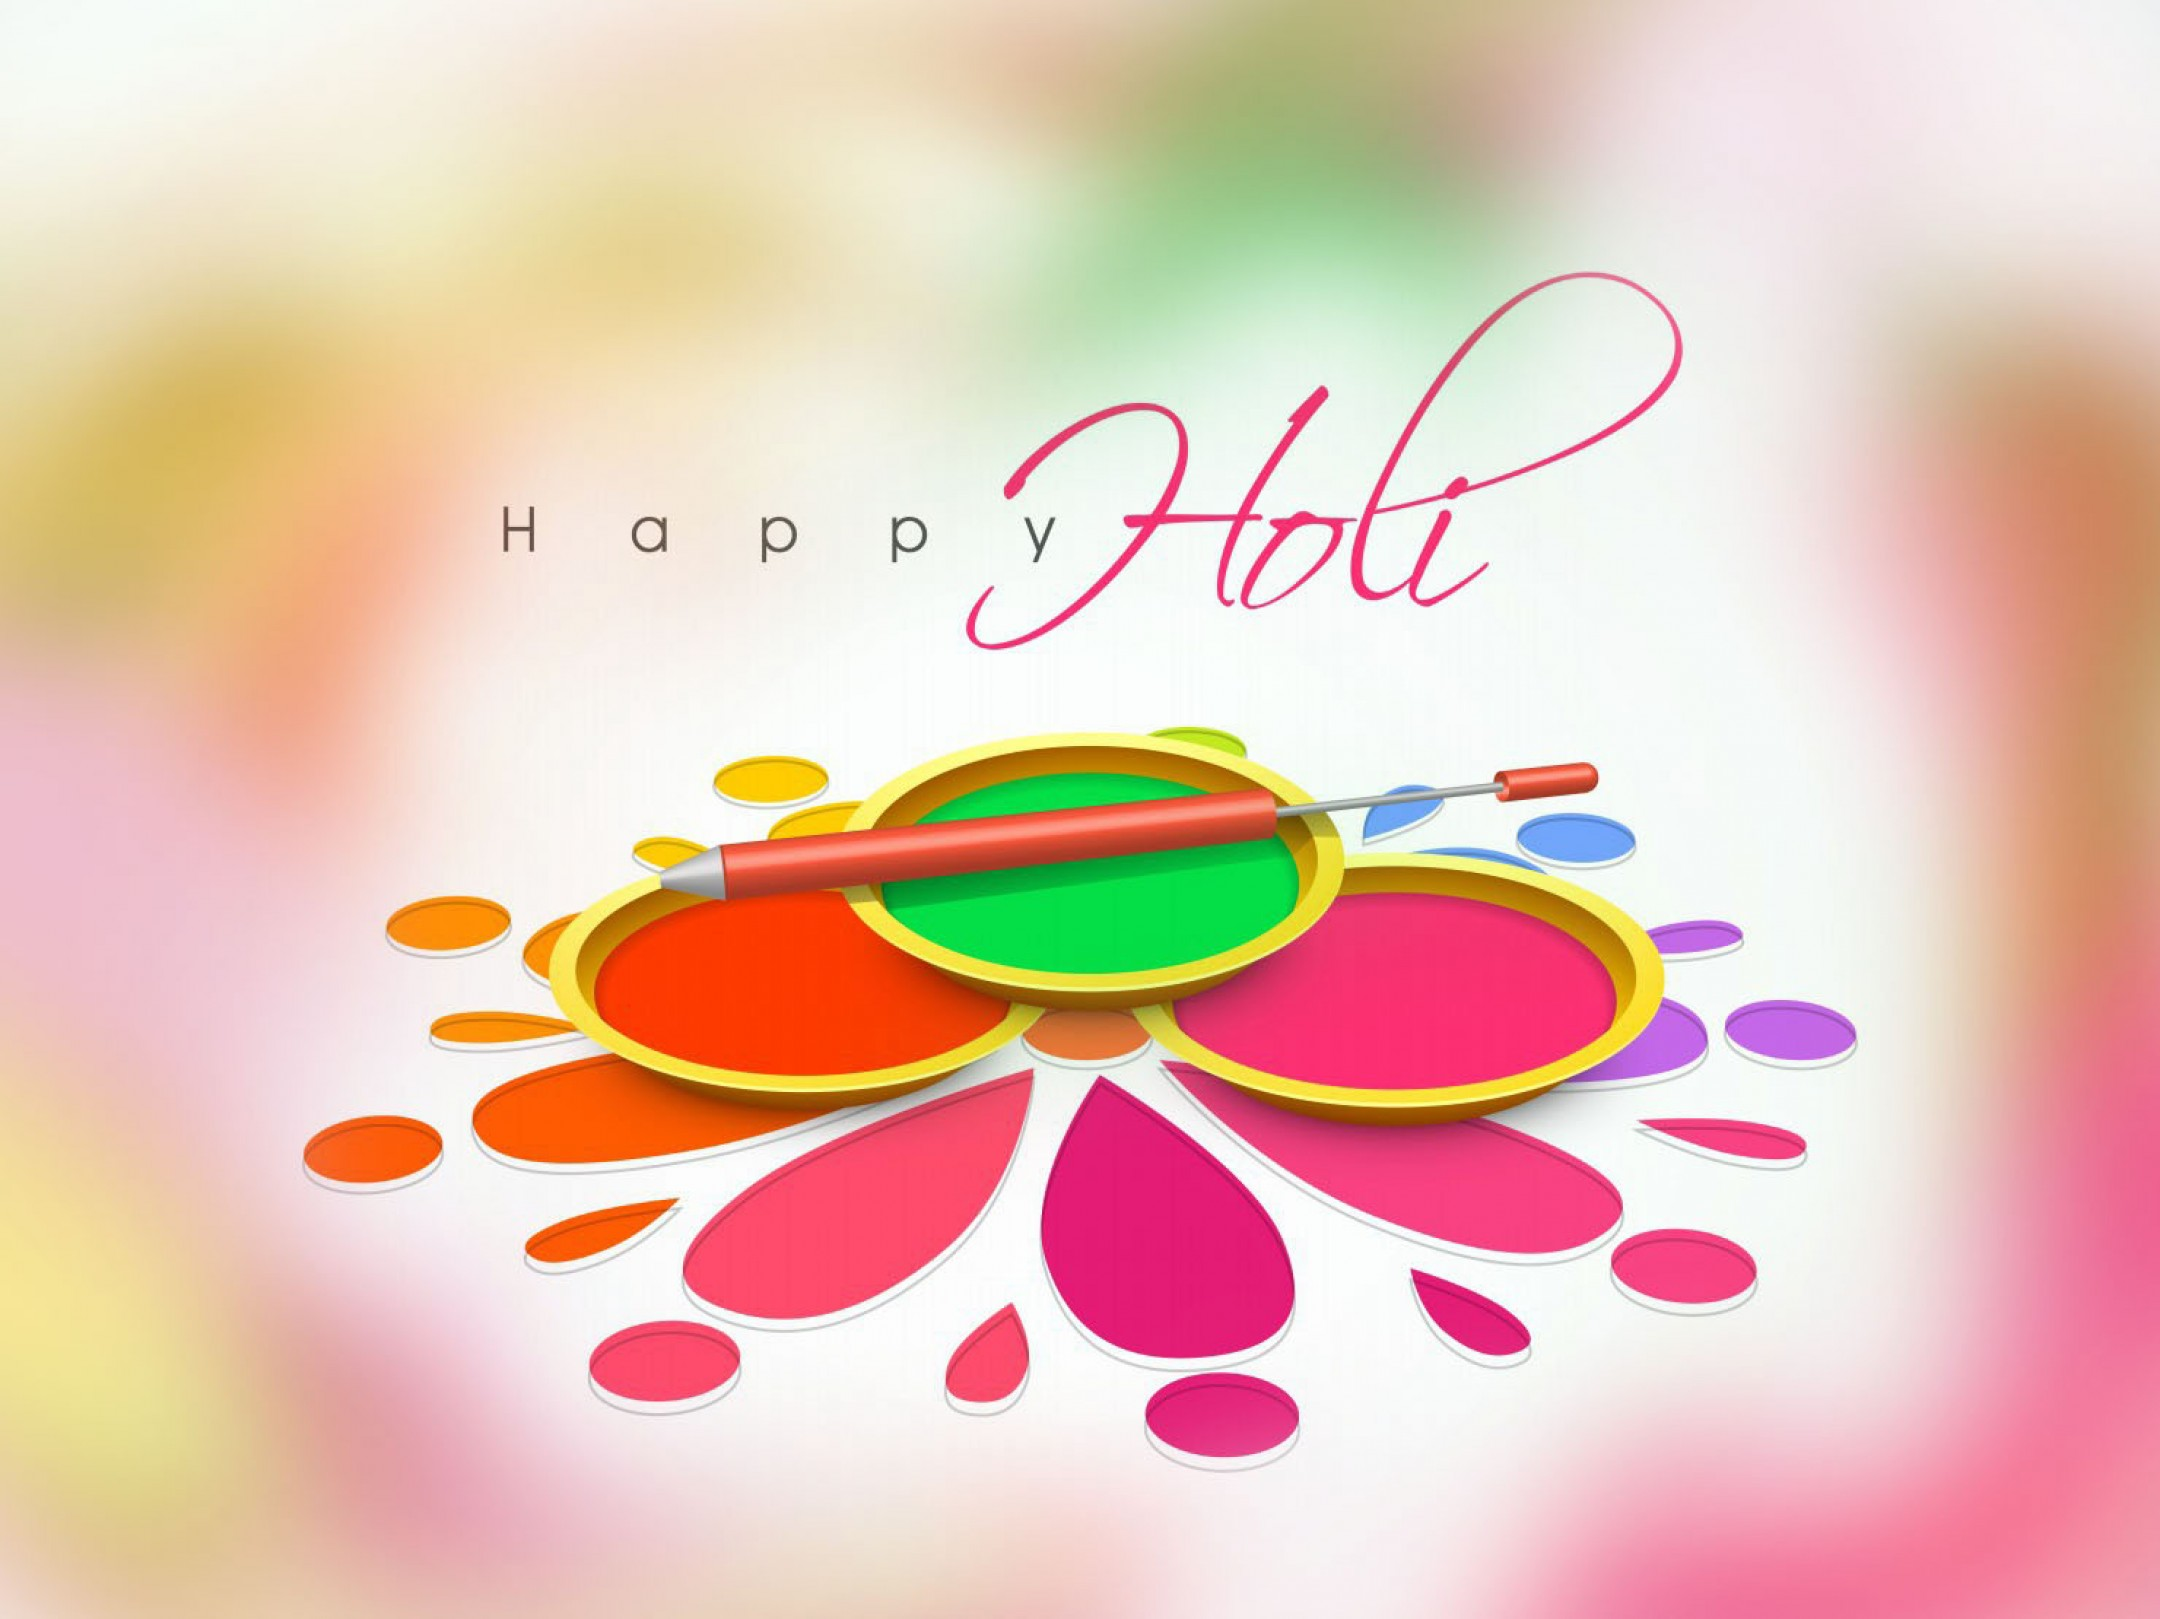 Happy holi 2018 colors festival holi greetings wishes hd wallpaper 2160x3840 kristyandbryce Image collections